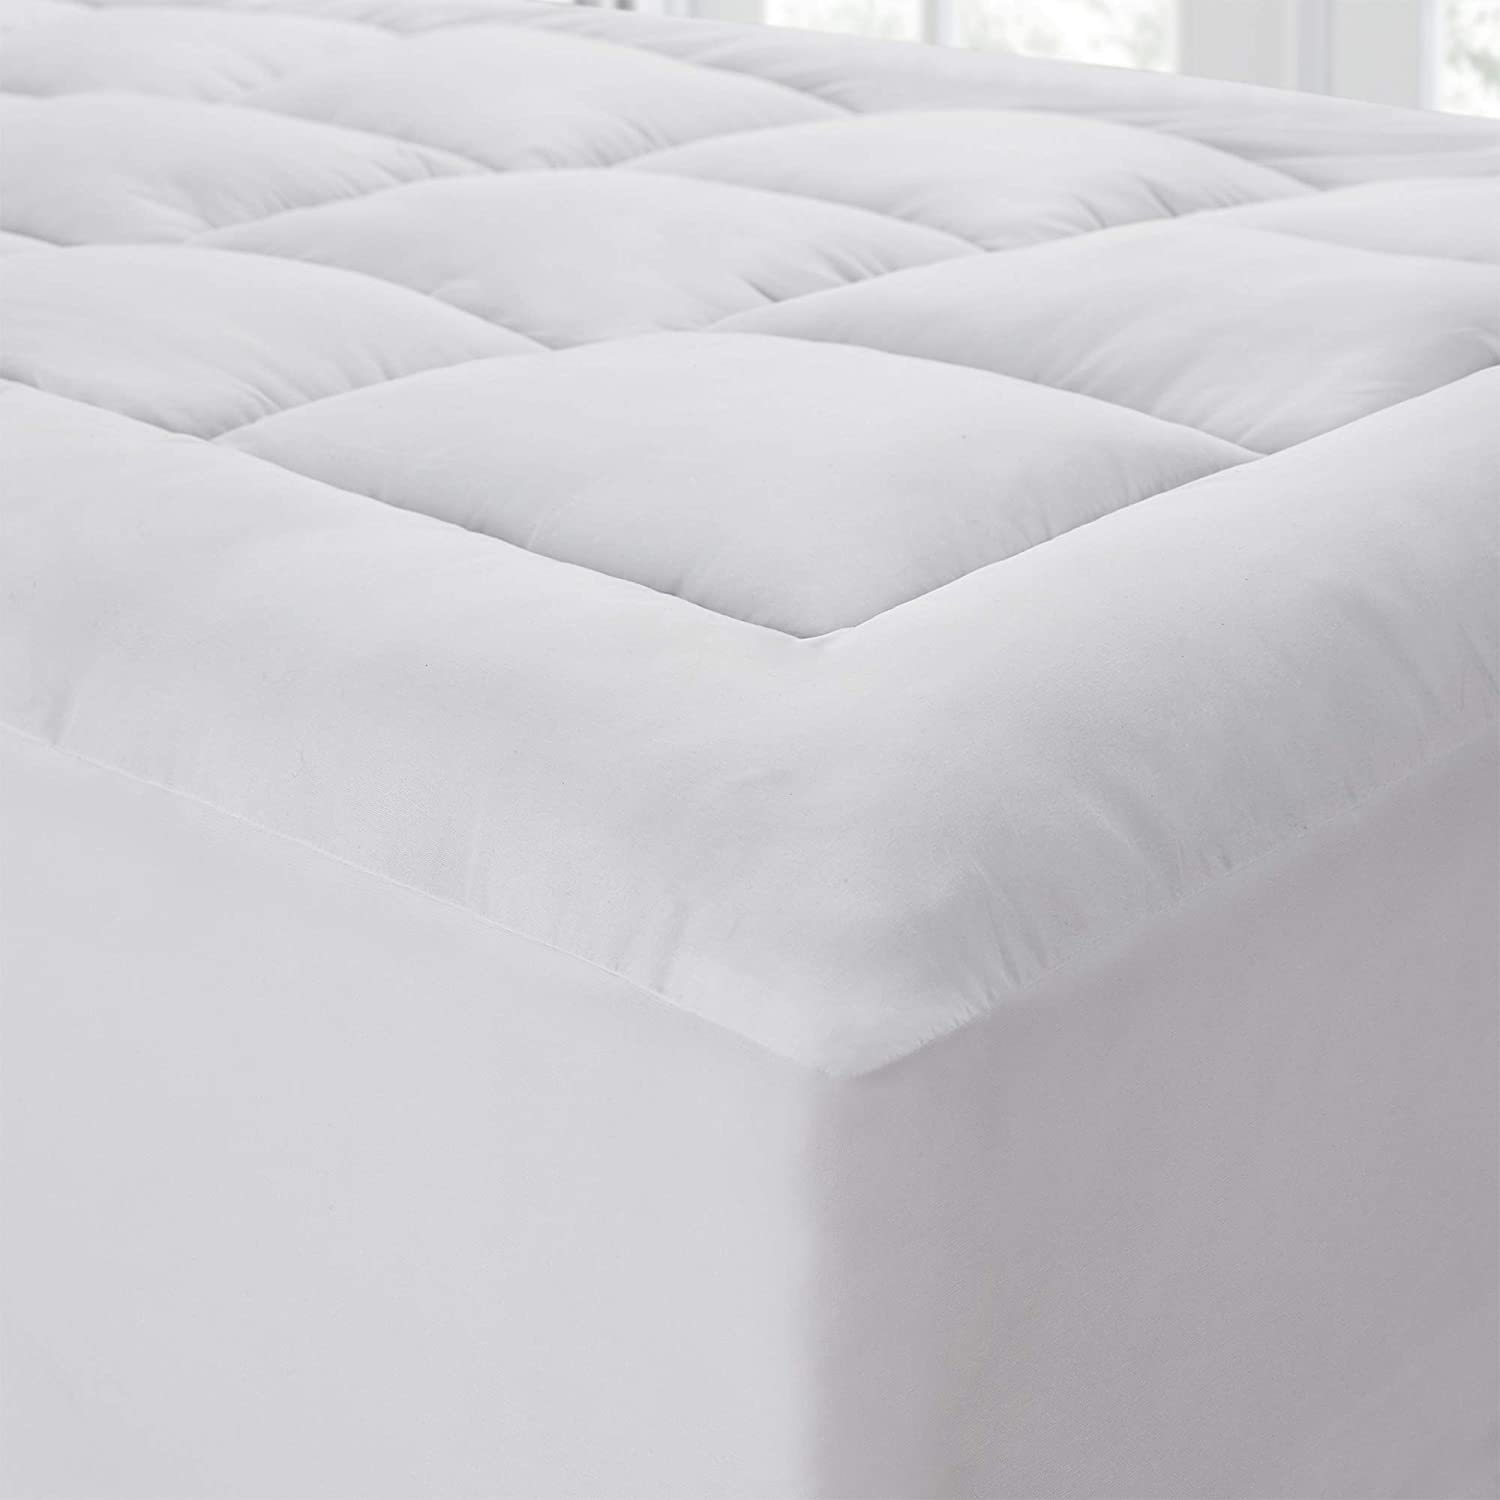 The Mega-Thick Indianapolis Mall Mattress Pad Pillow-Top 25% OFF - Topper Queen